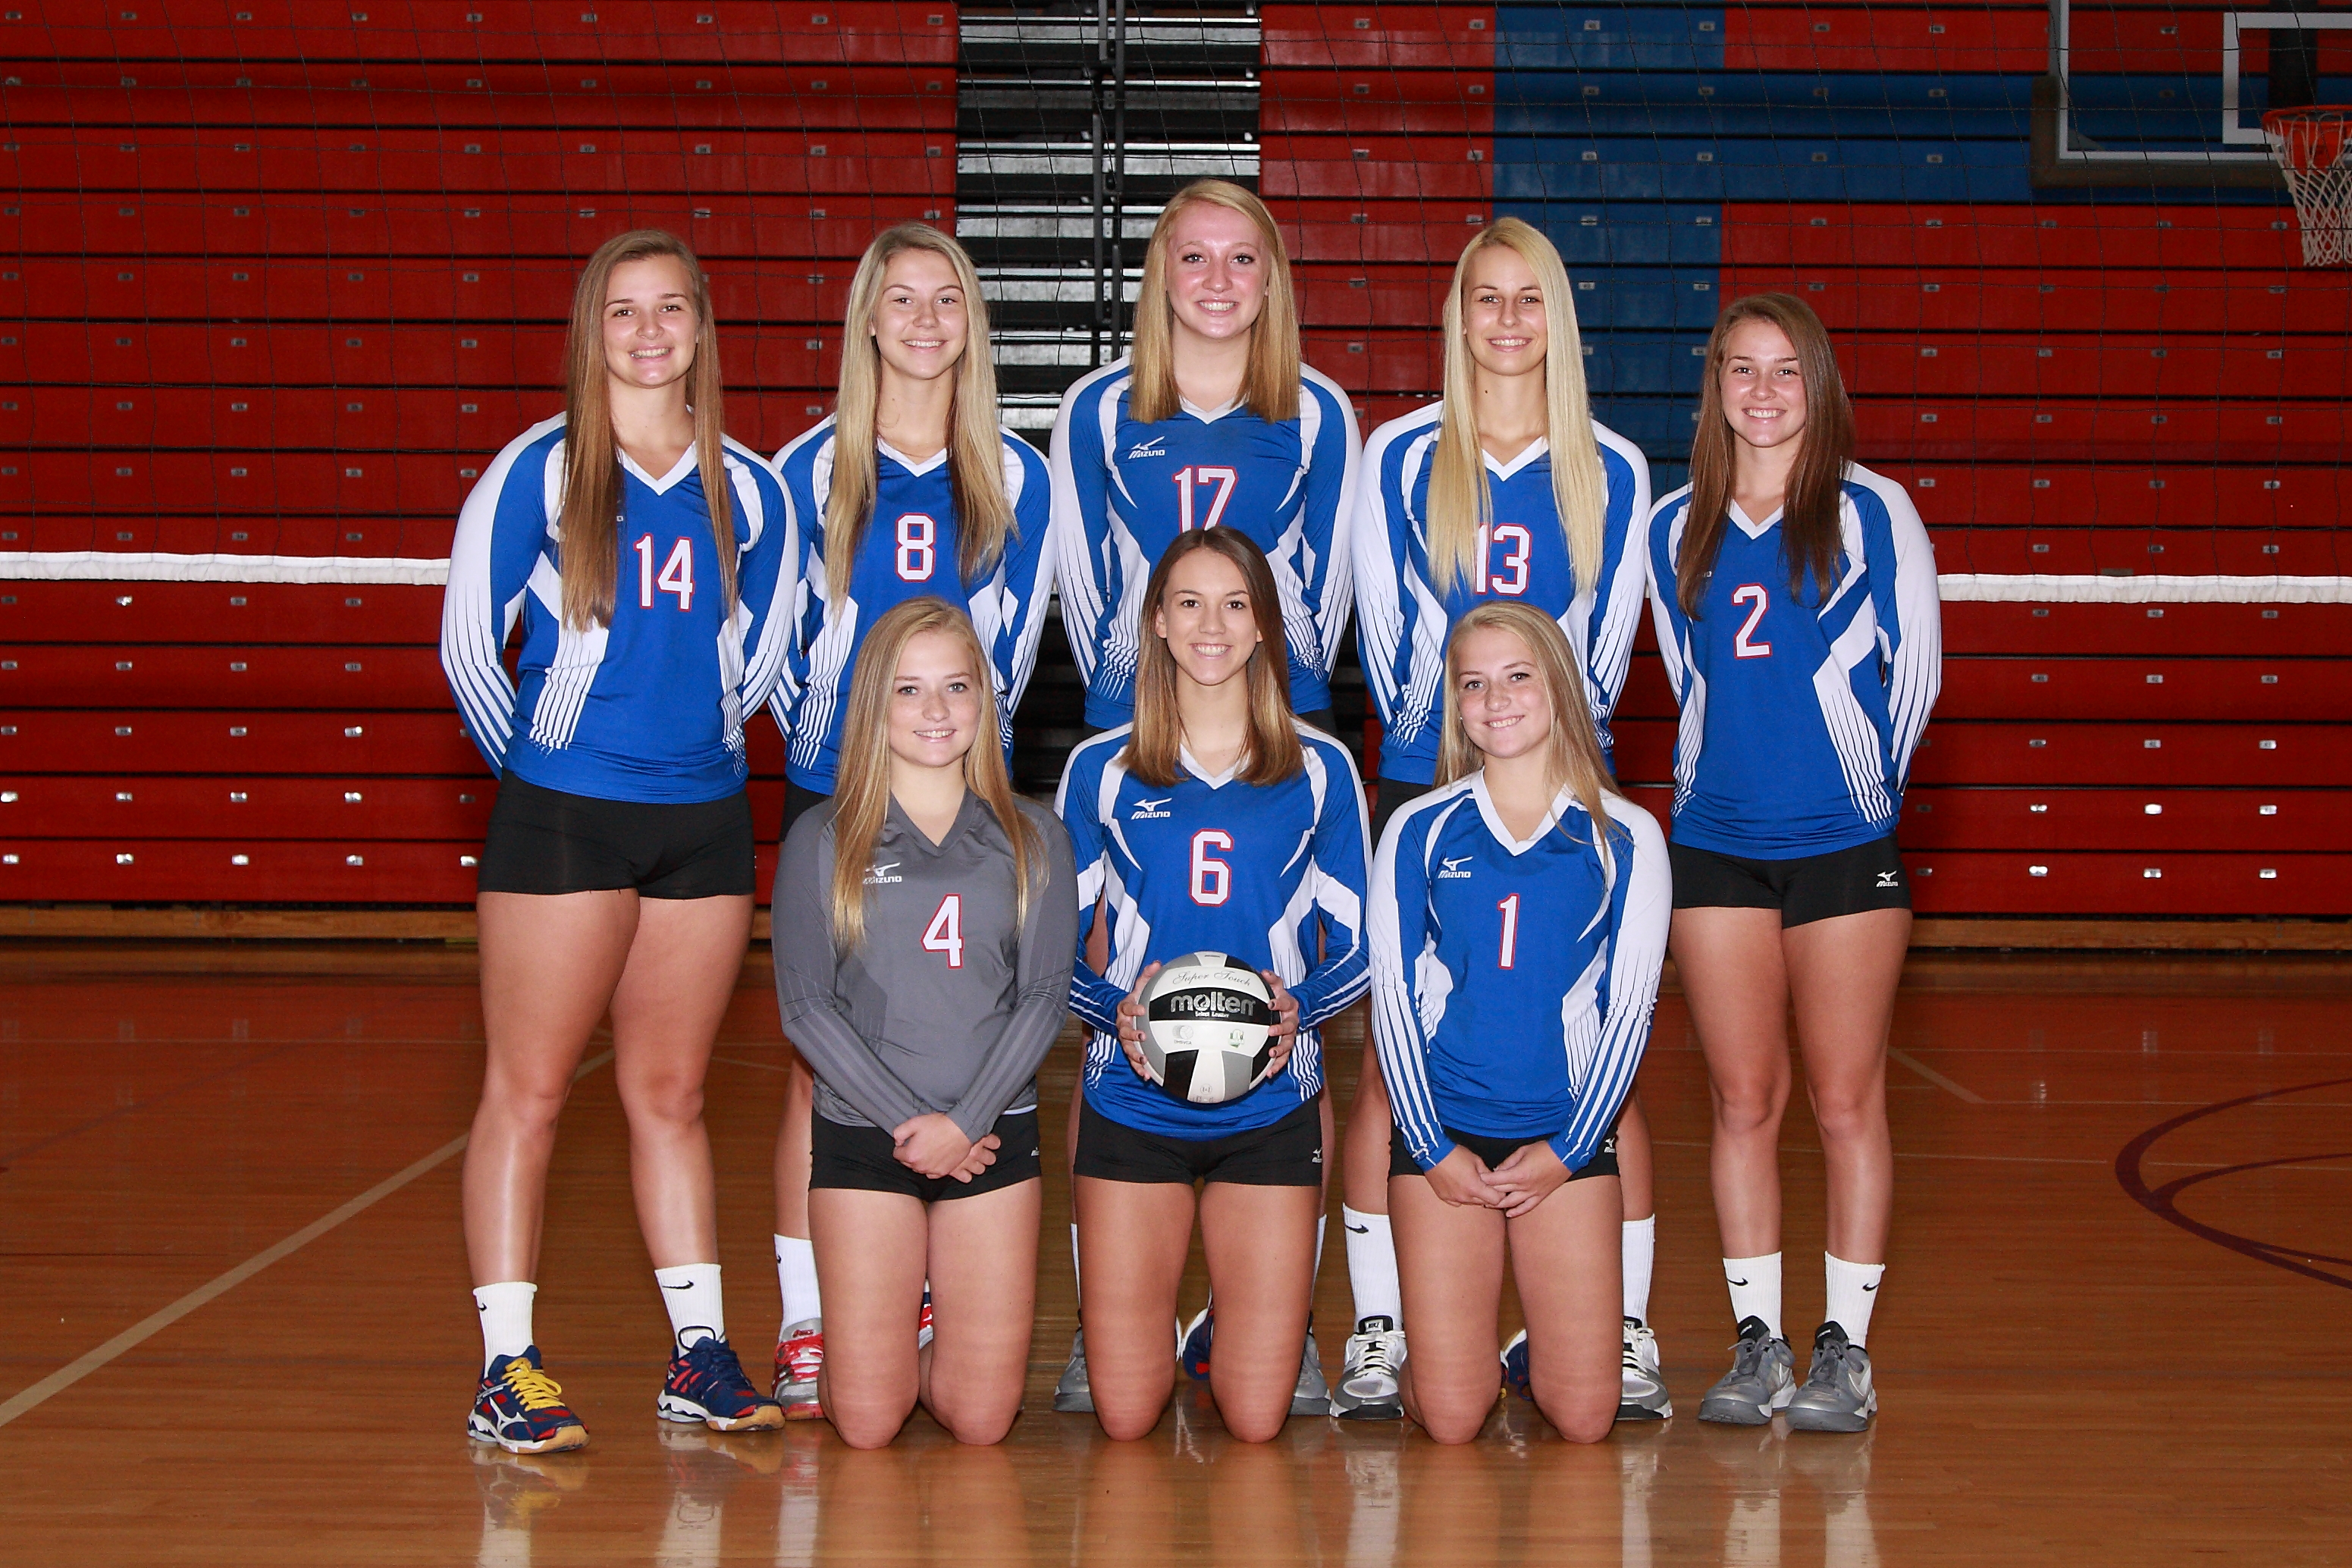 West Holmes VolleyBall